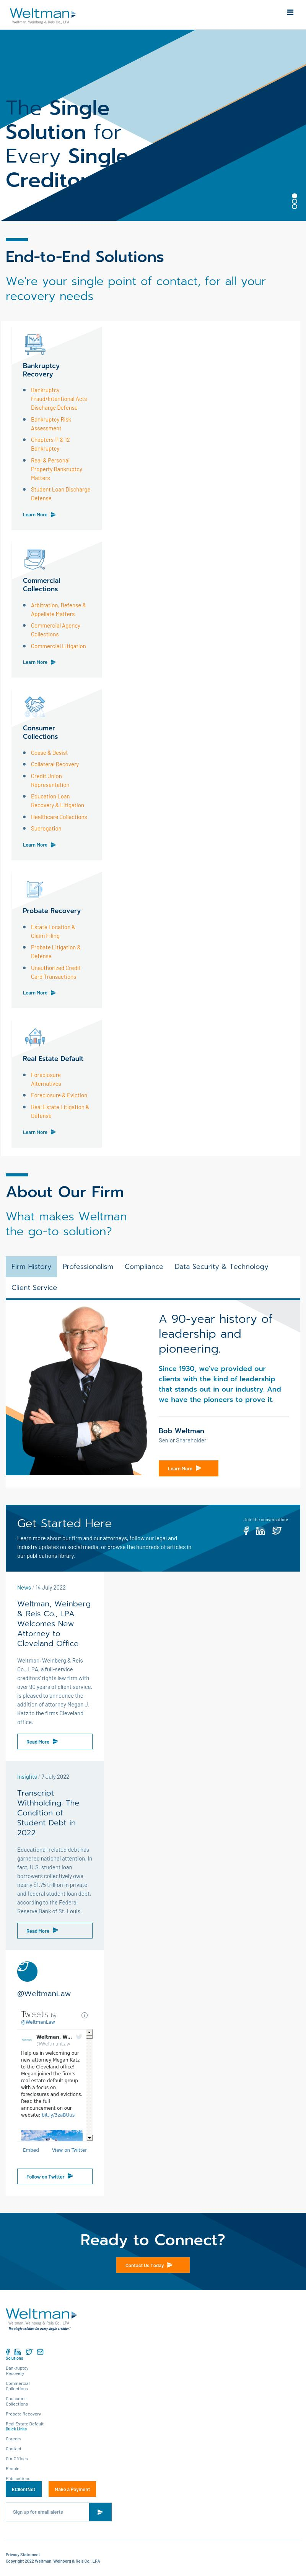 Weltman Weinberg & Reis Co LPA - Cleveland OH Lawyers